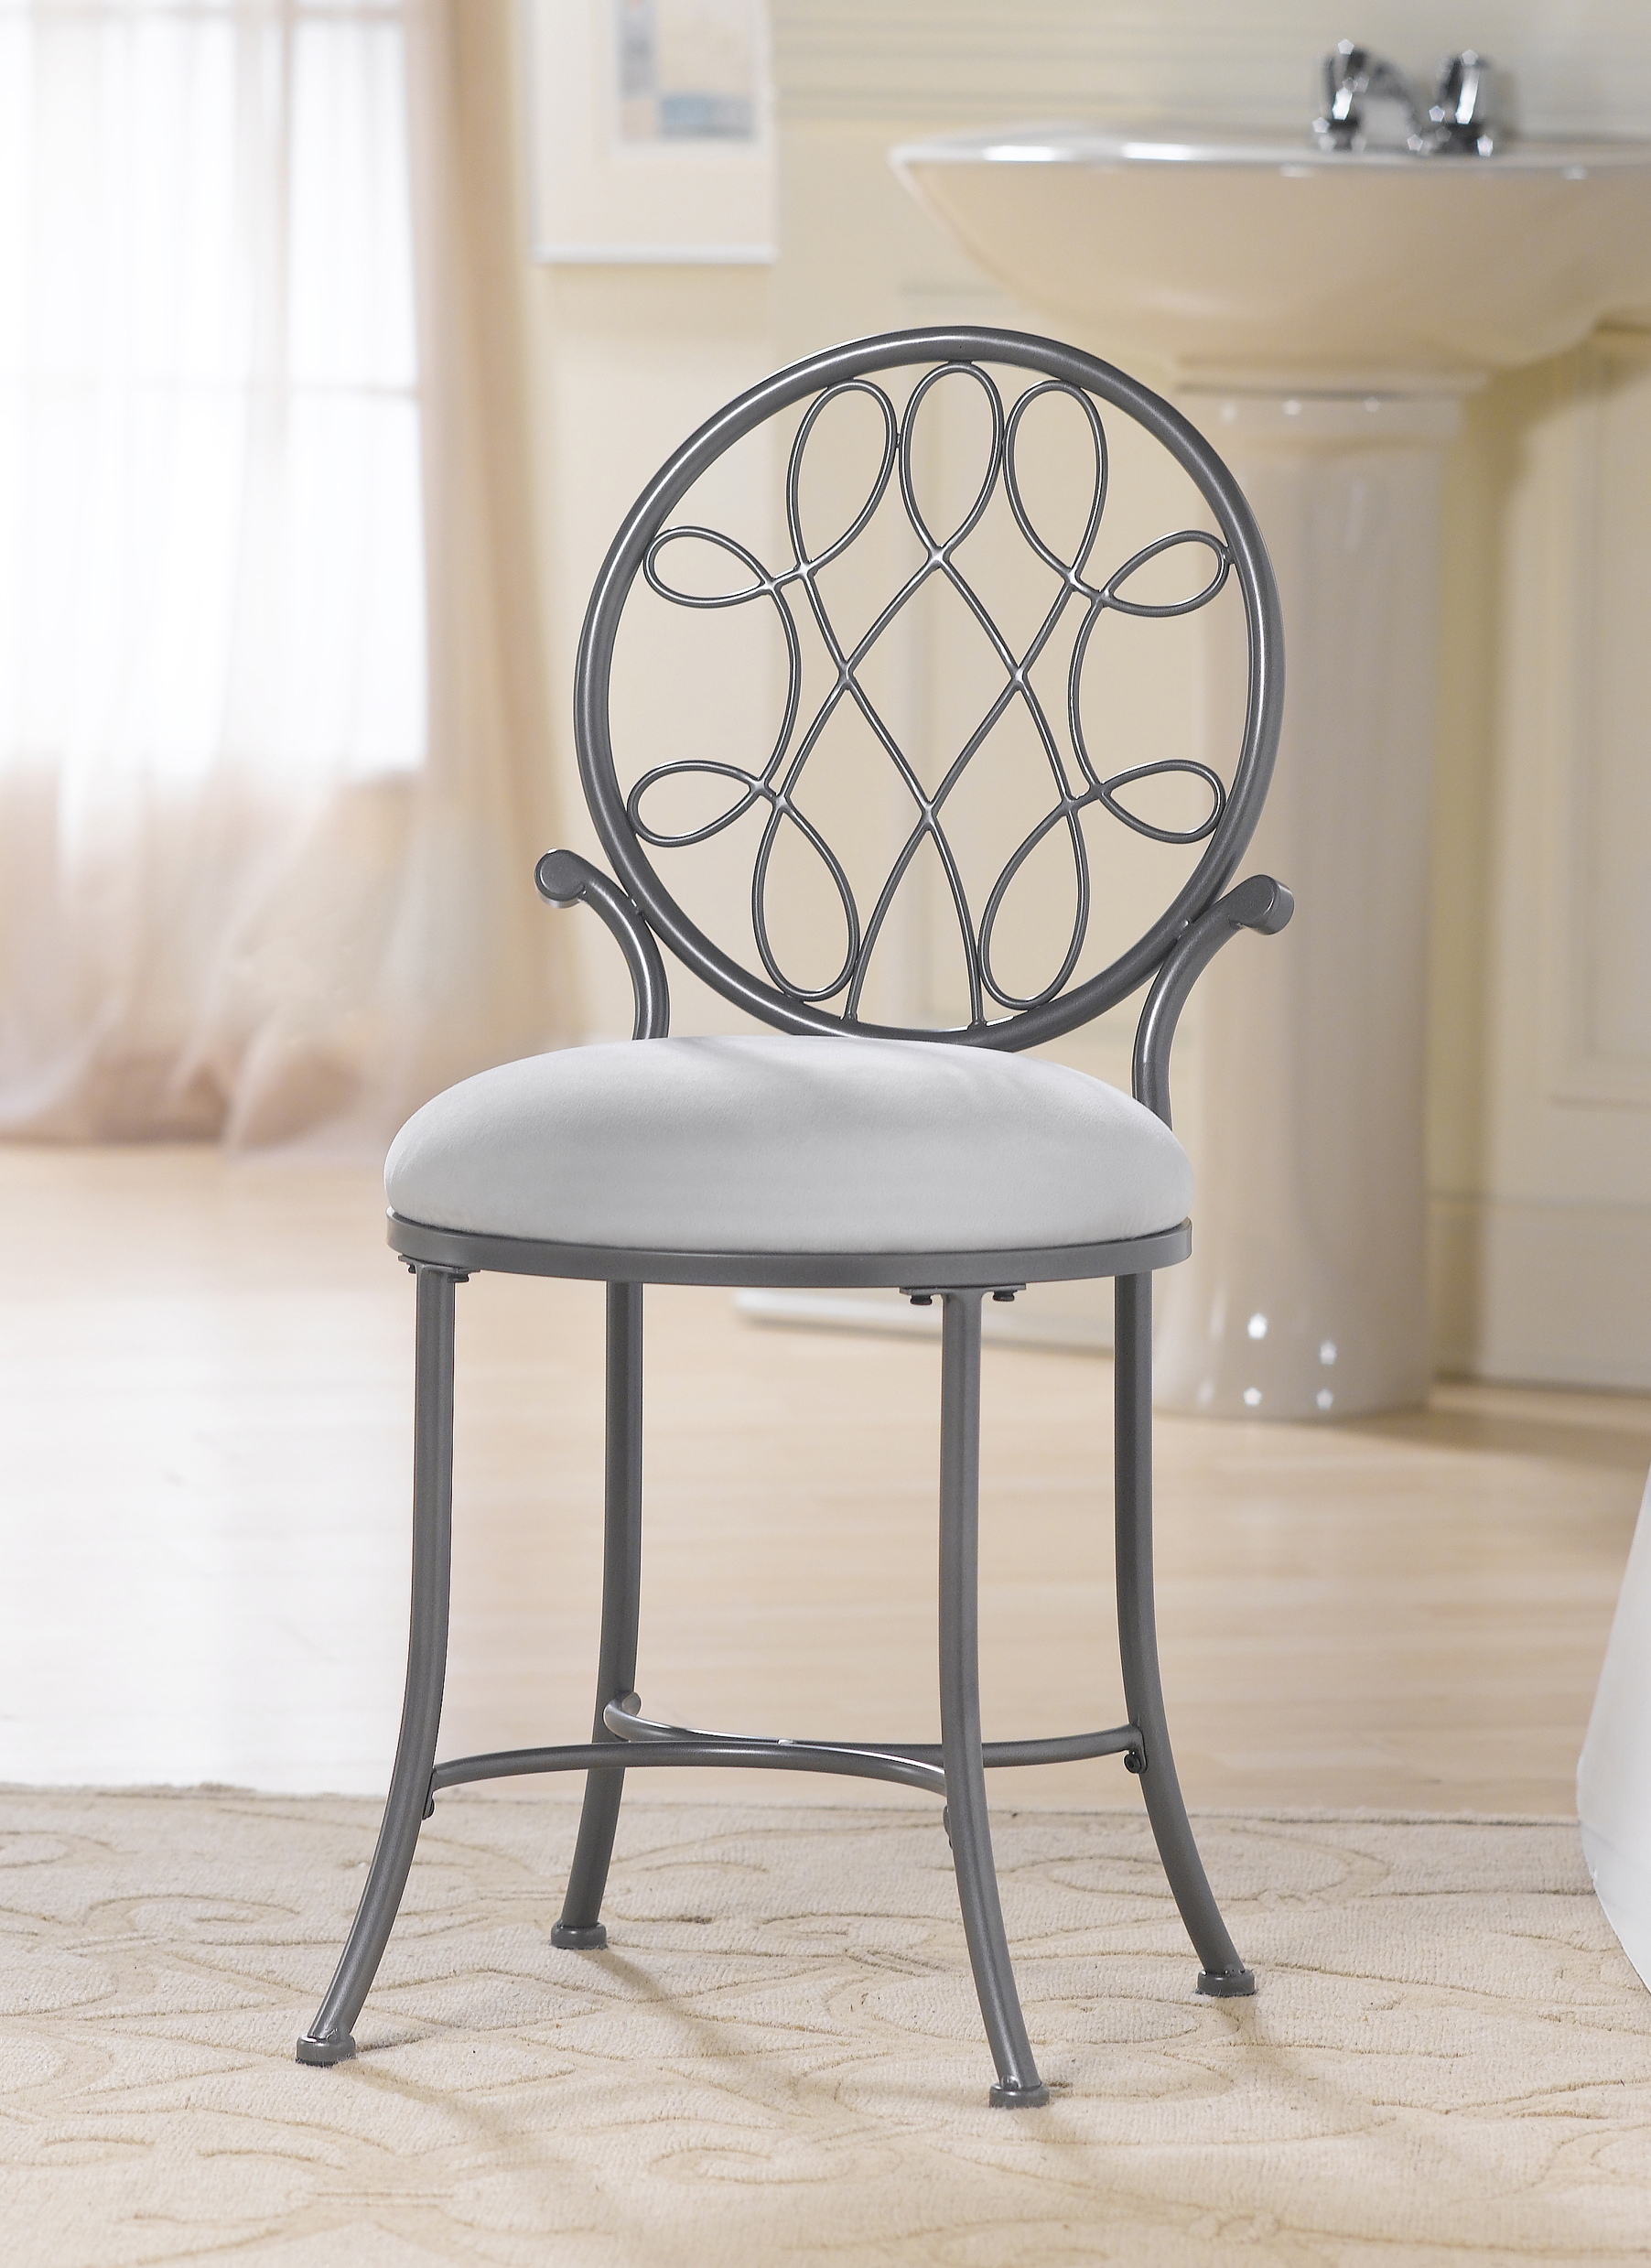 Contemporary Vanity Chairs For Bathroom